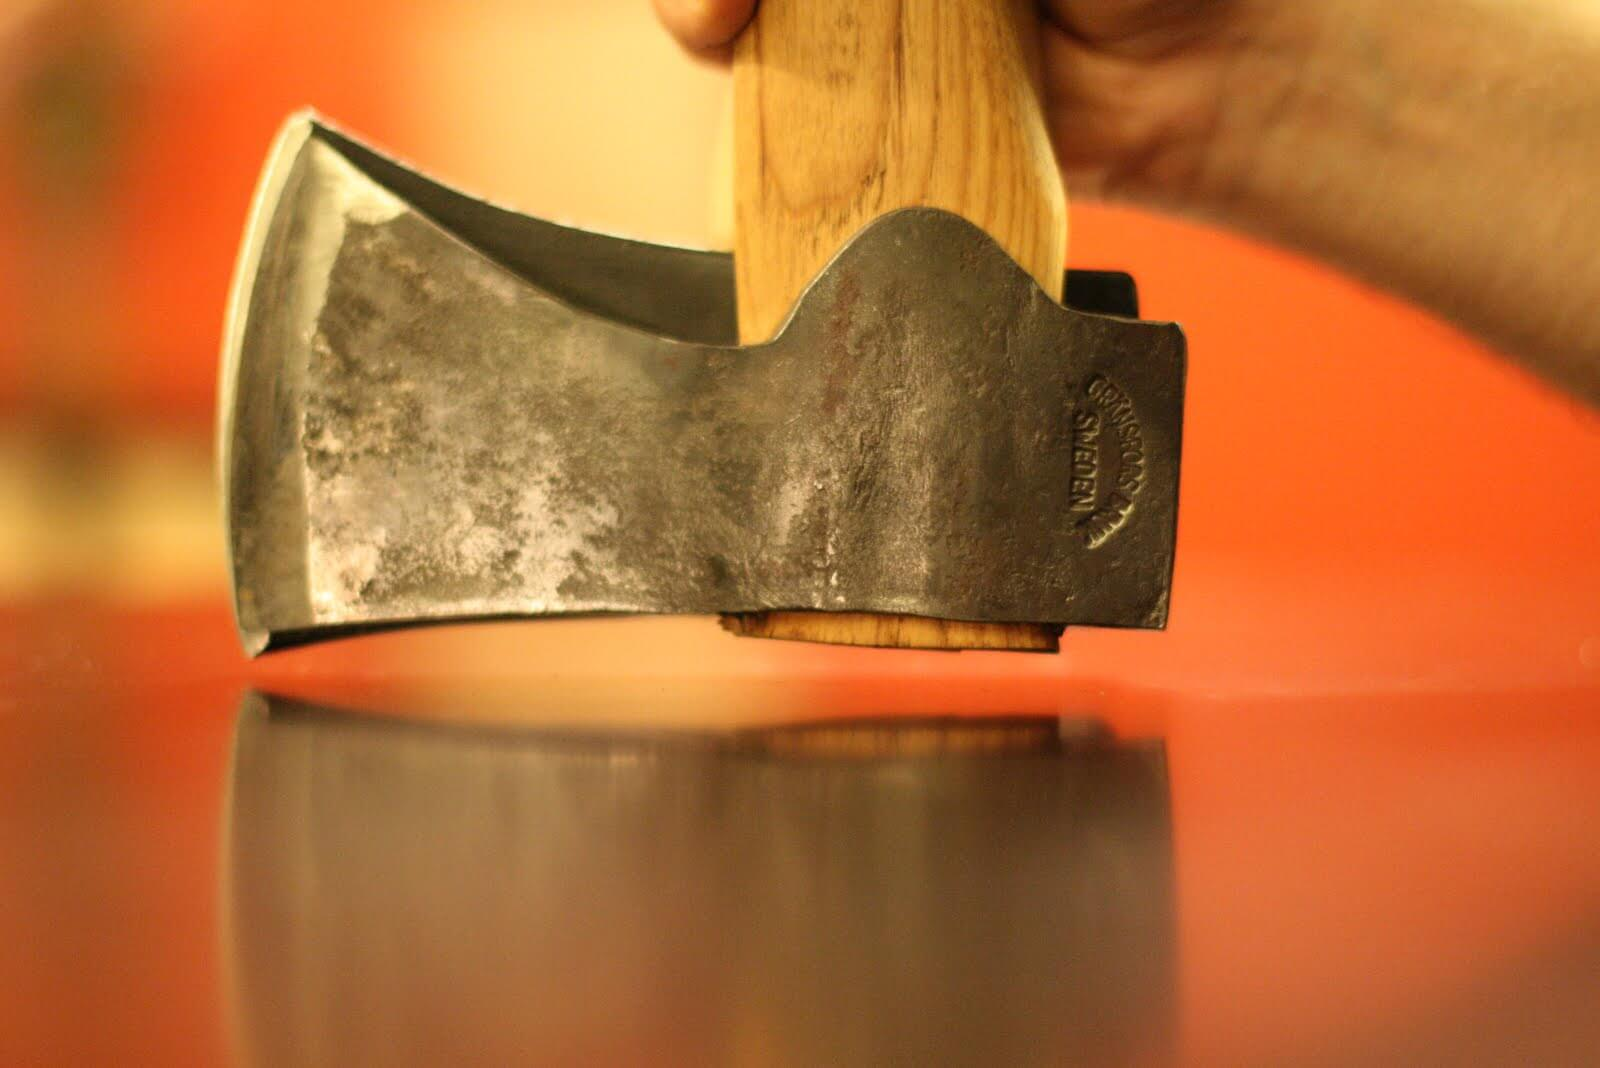 https://clutchaxes.com/best-axe-for-splitting-wood-the-only-one-youll-need/